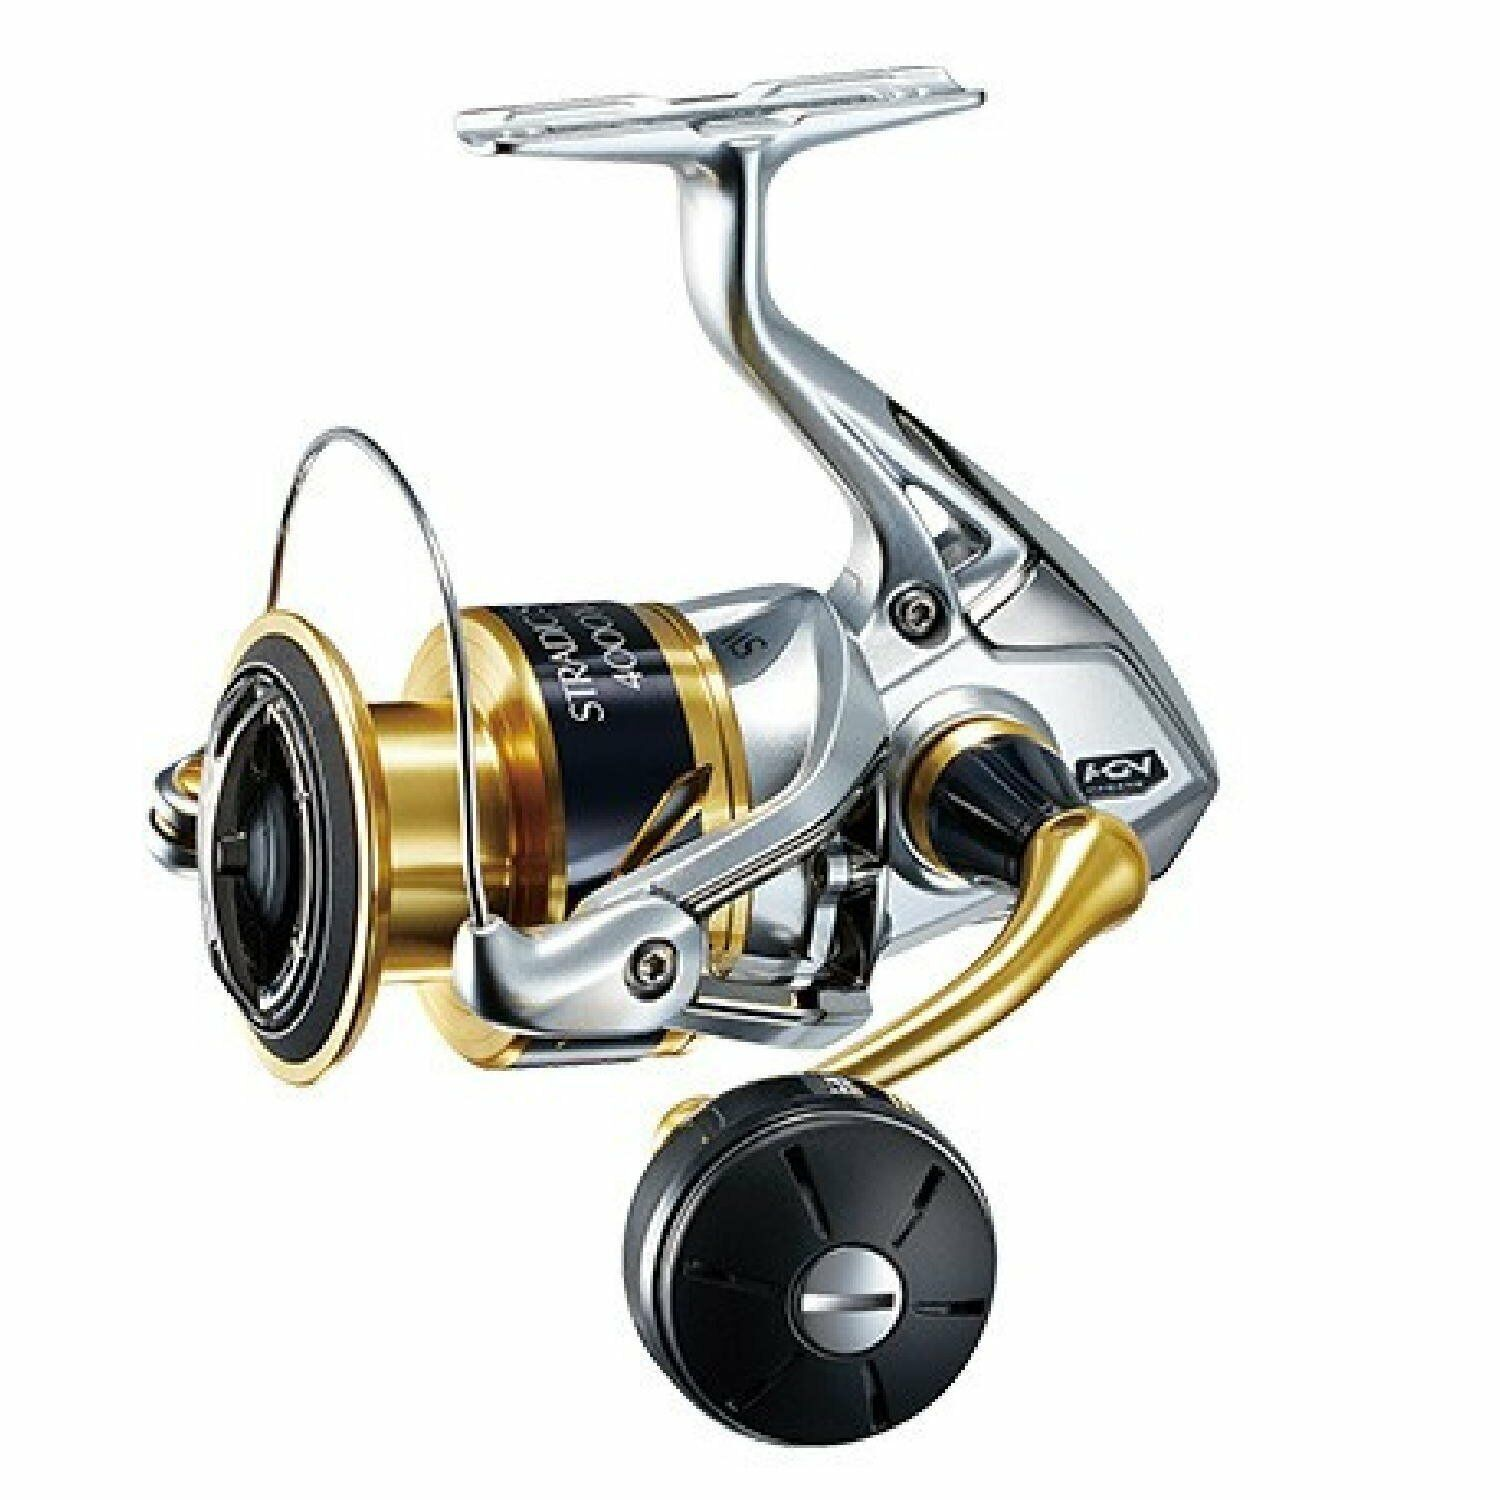 SHIMANO STRADIC SW 4000HG Spinning Reel New in Box